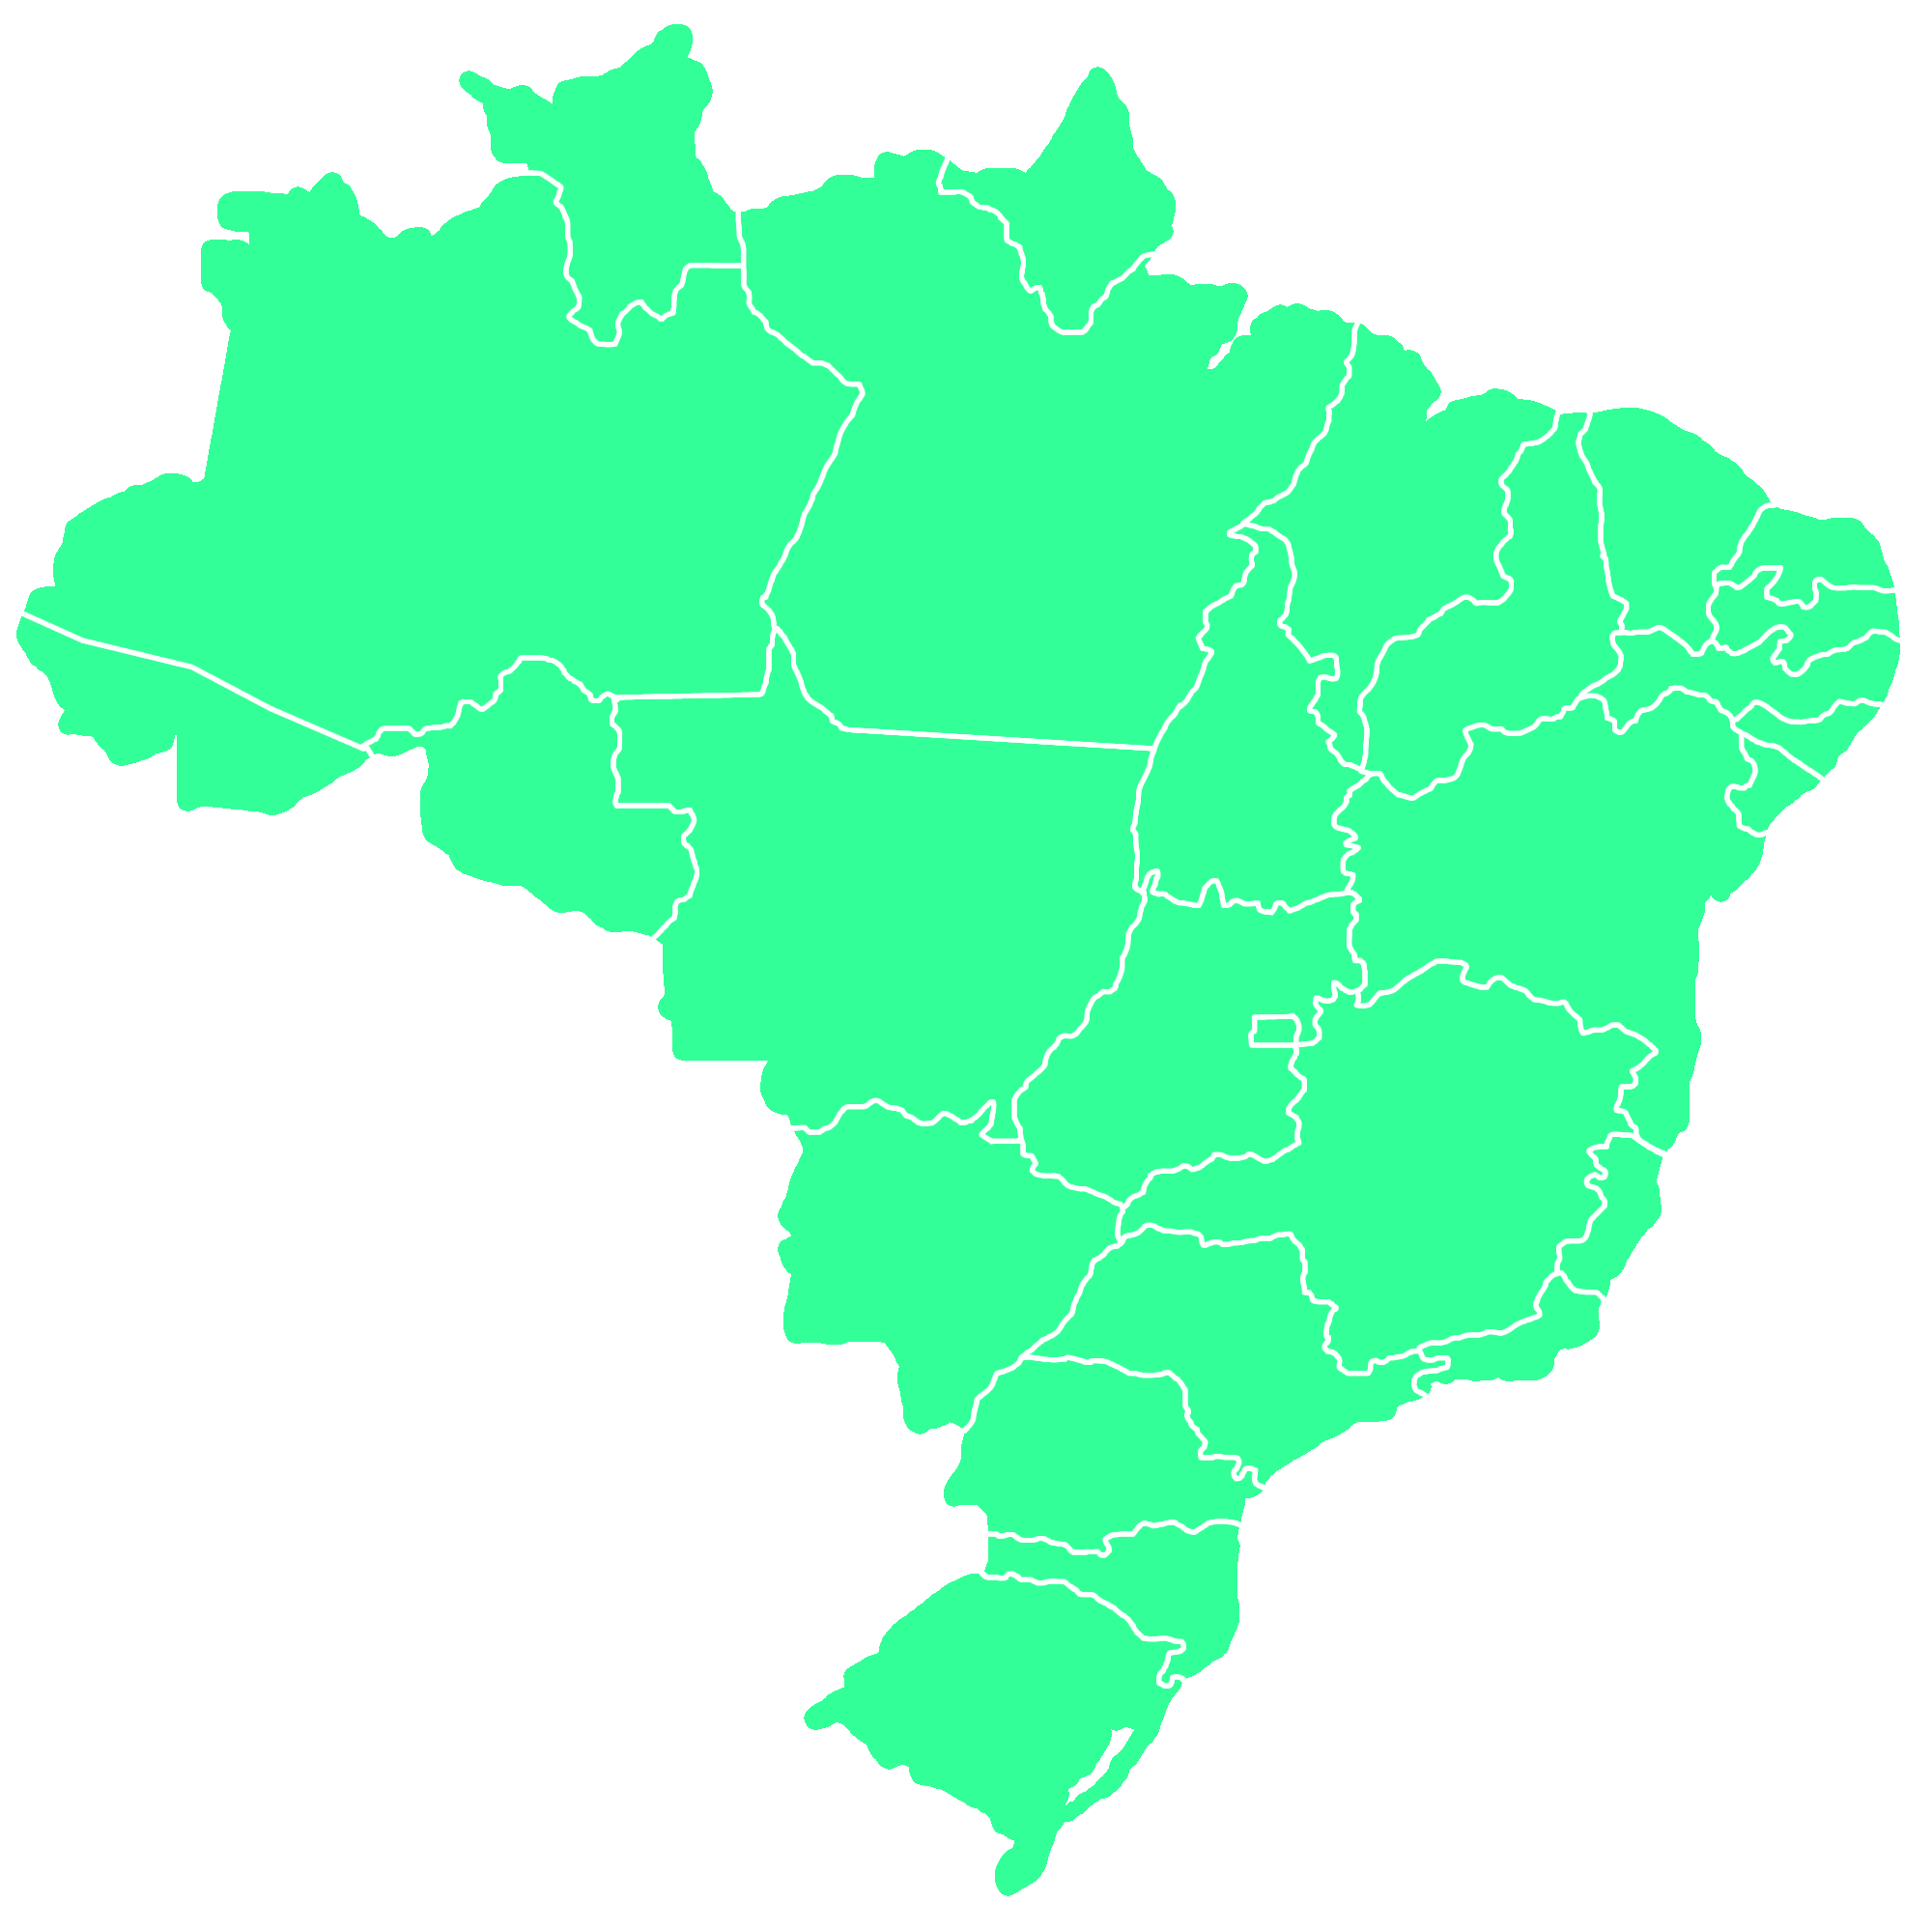 File:Map of Brazil (States).png.